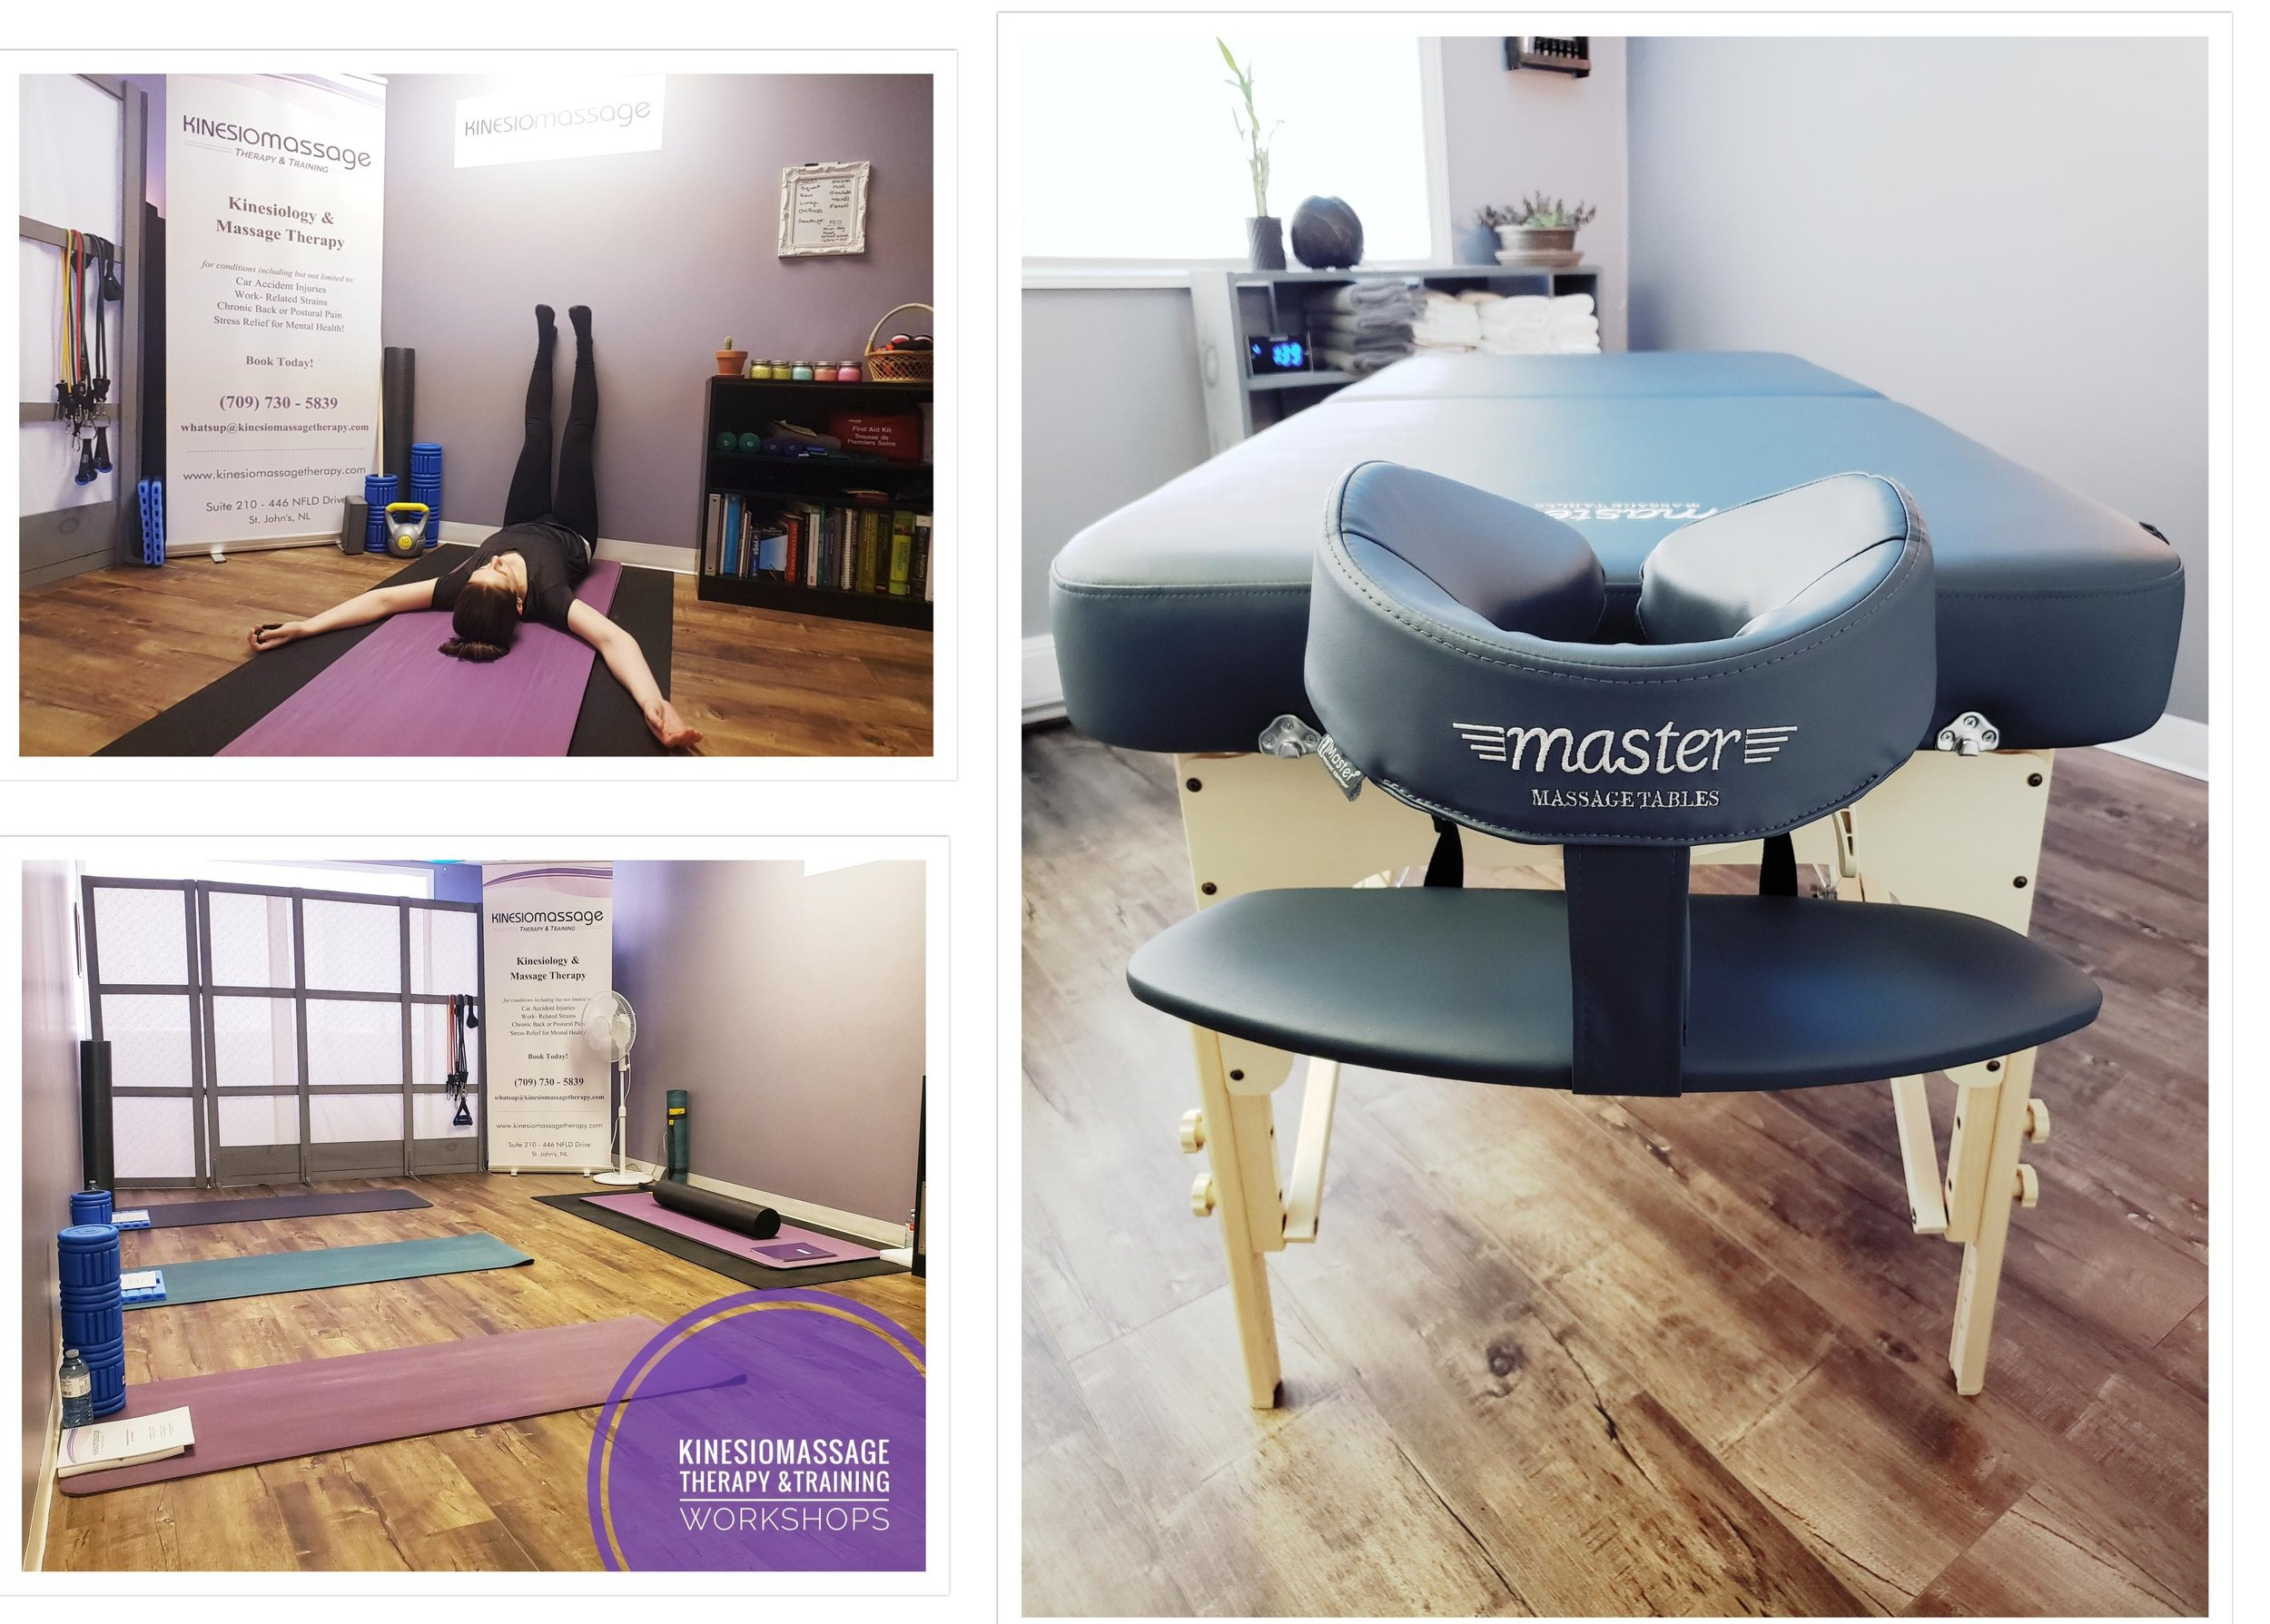 Kinesiology & Massage Therapy Integration